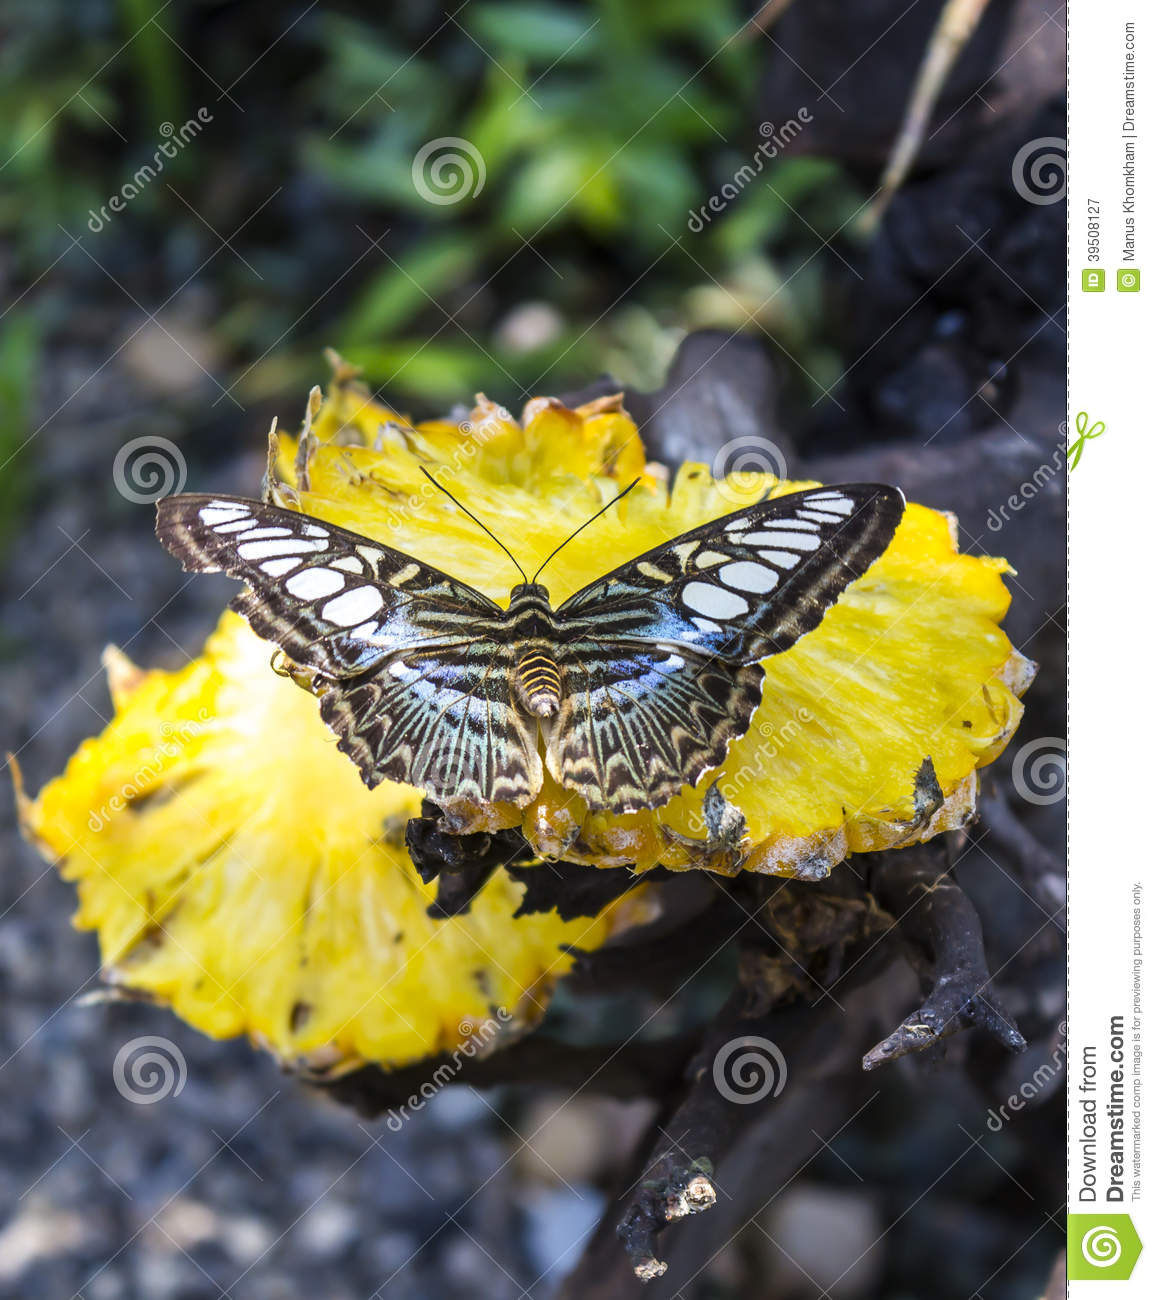 Butterfly on yellow pineapple